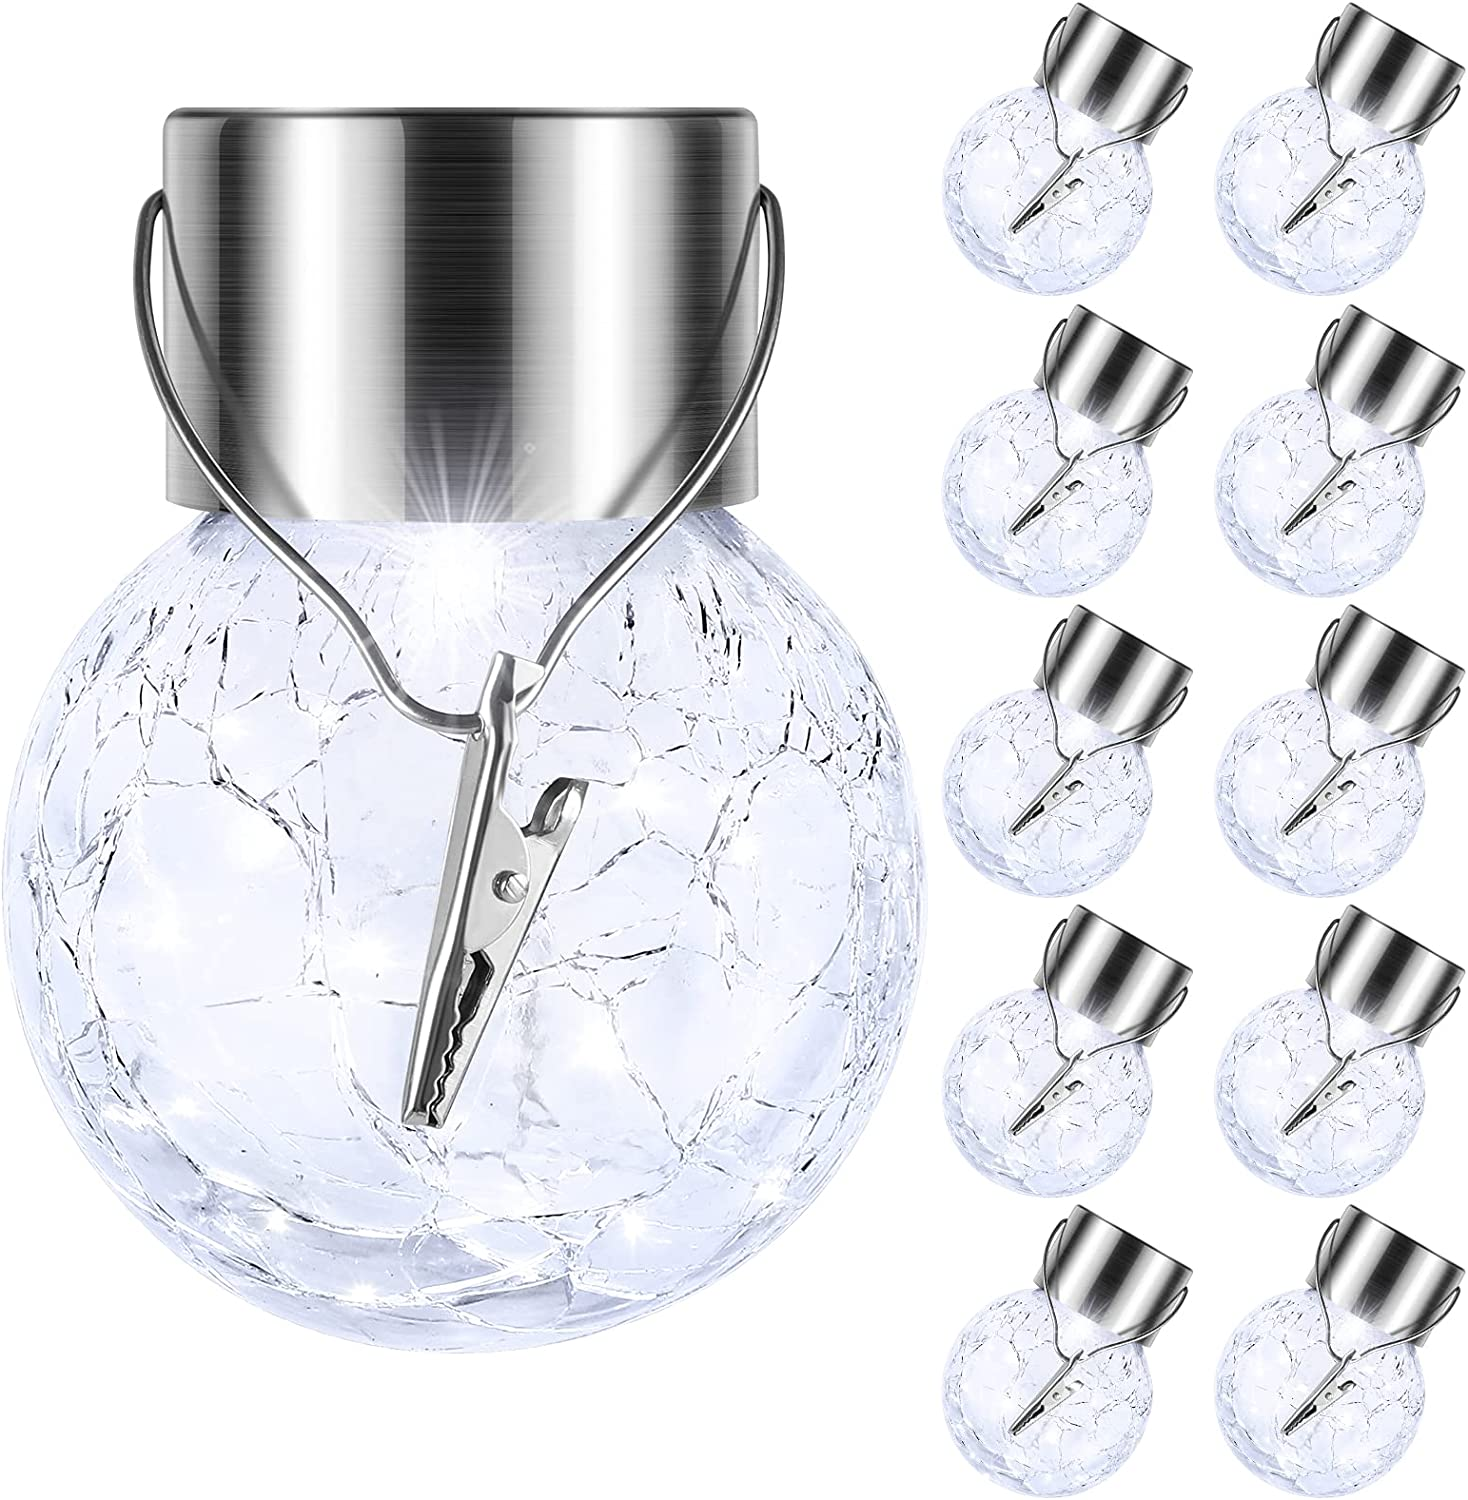 10-Pack Hanging Solar Lights Outdoor, Decorative Cracked Glass Ball Light, Solar Powered Waterproof Globe Lighting with Handle for Garden, Yard, Patio, Tree, Holiday Decoration(Cool White)